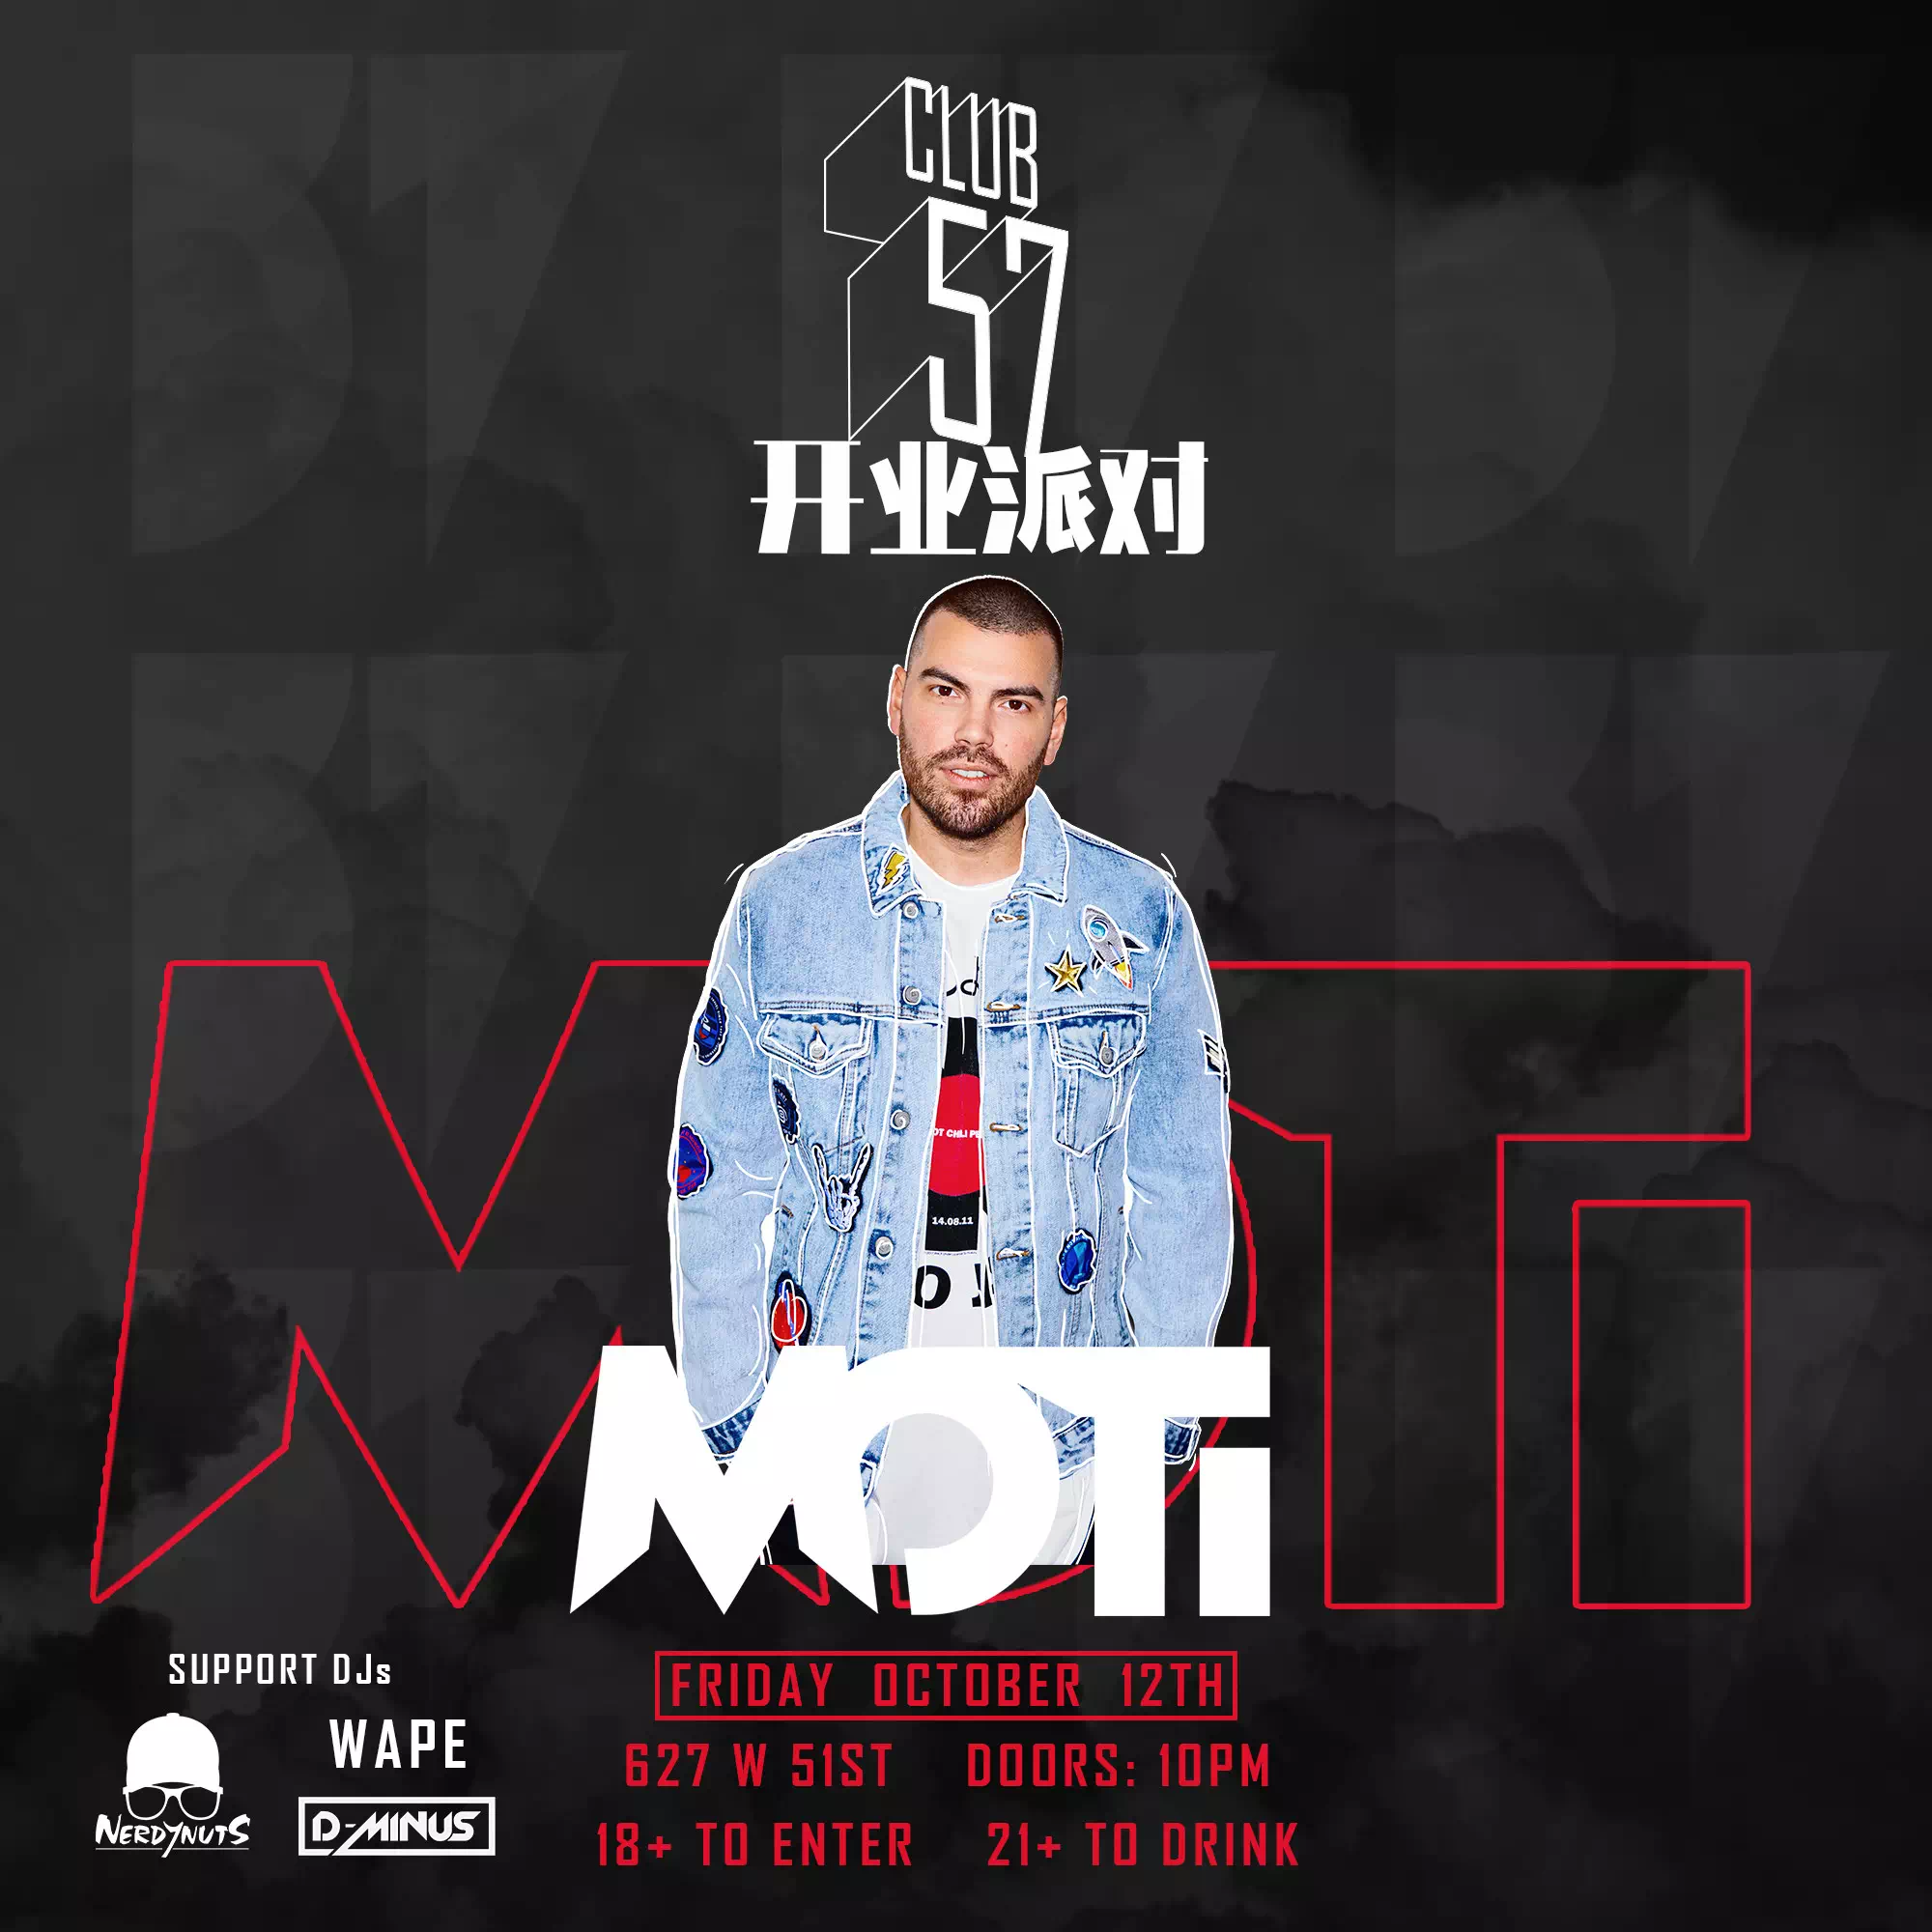 MOTi at Club 57 Grand Opening  Oc 12th, Friday